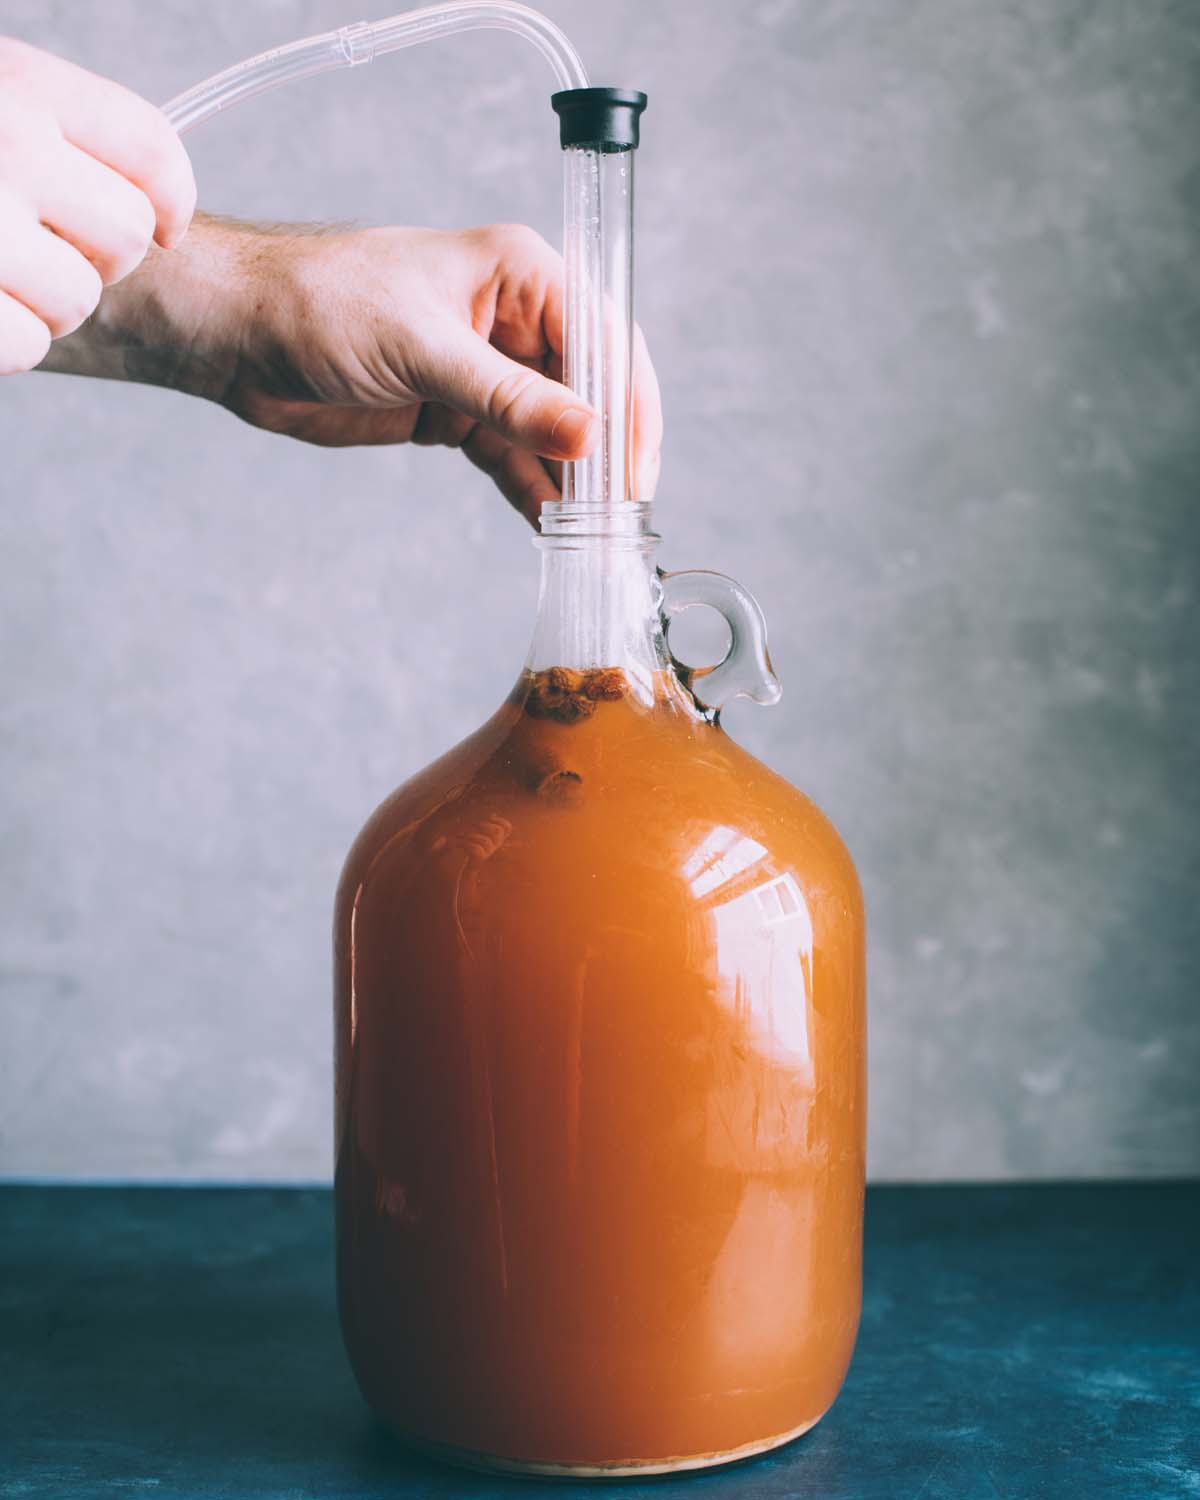 a hand putting the auto siphon into the jug of cider